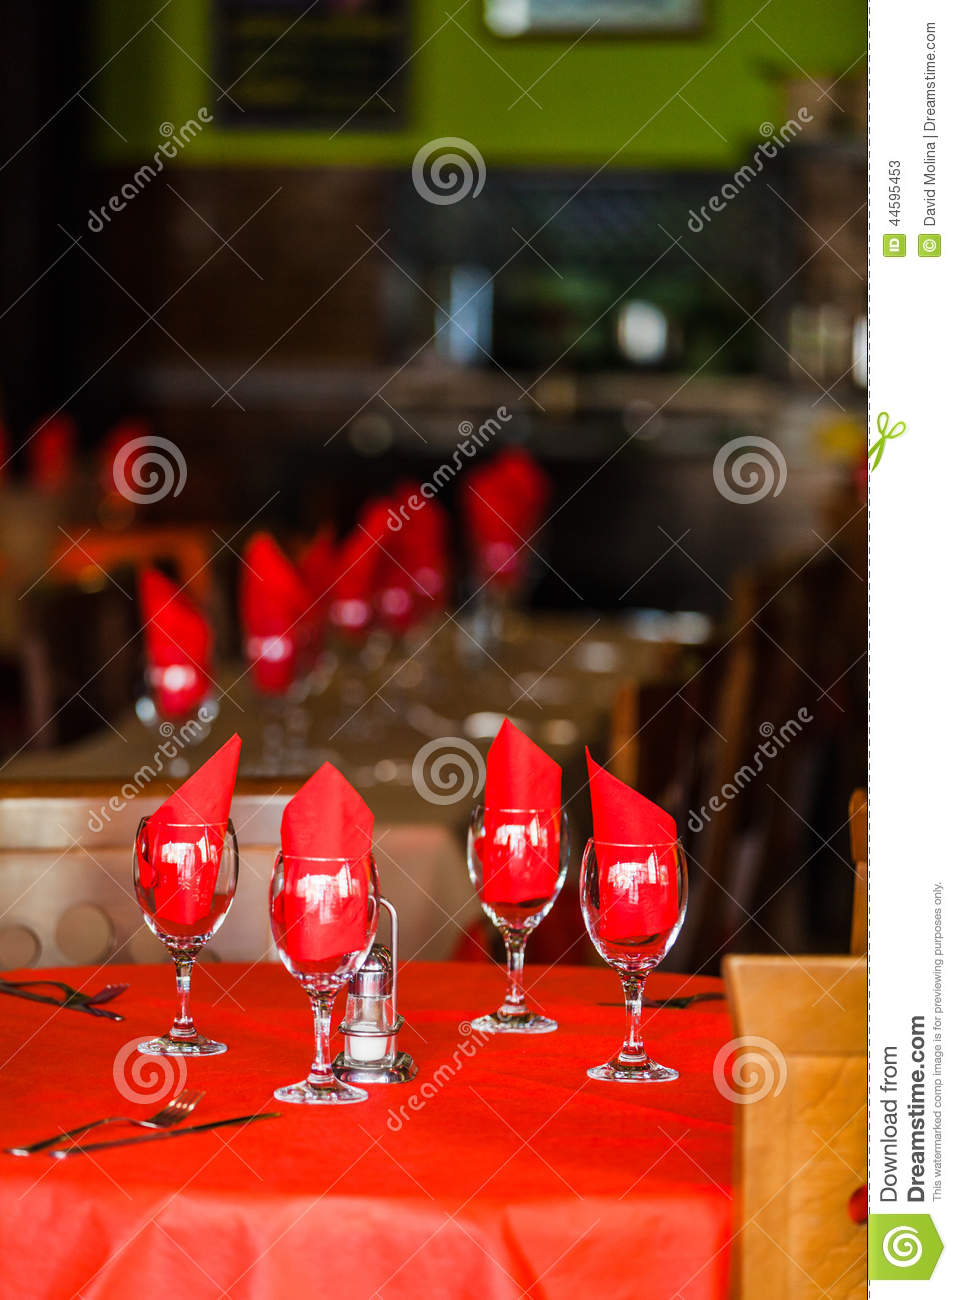 Table setting in a spanish restaurant. & Table Setting In A Spanish Restaurant. Stock Image - Image of lunch ...